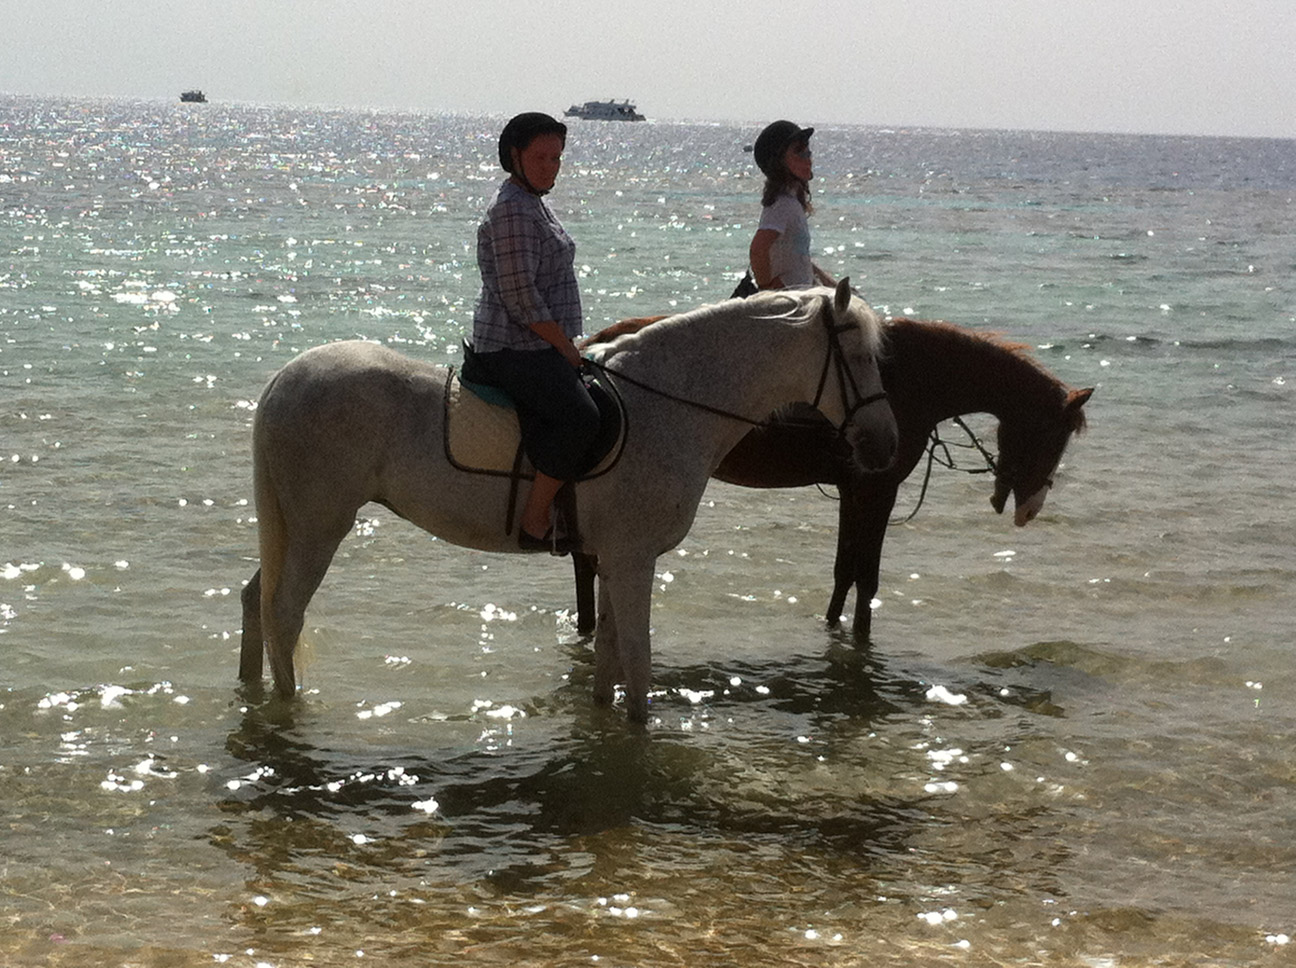 Horse riding along the beaches of Sharm el Sheikh